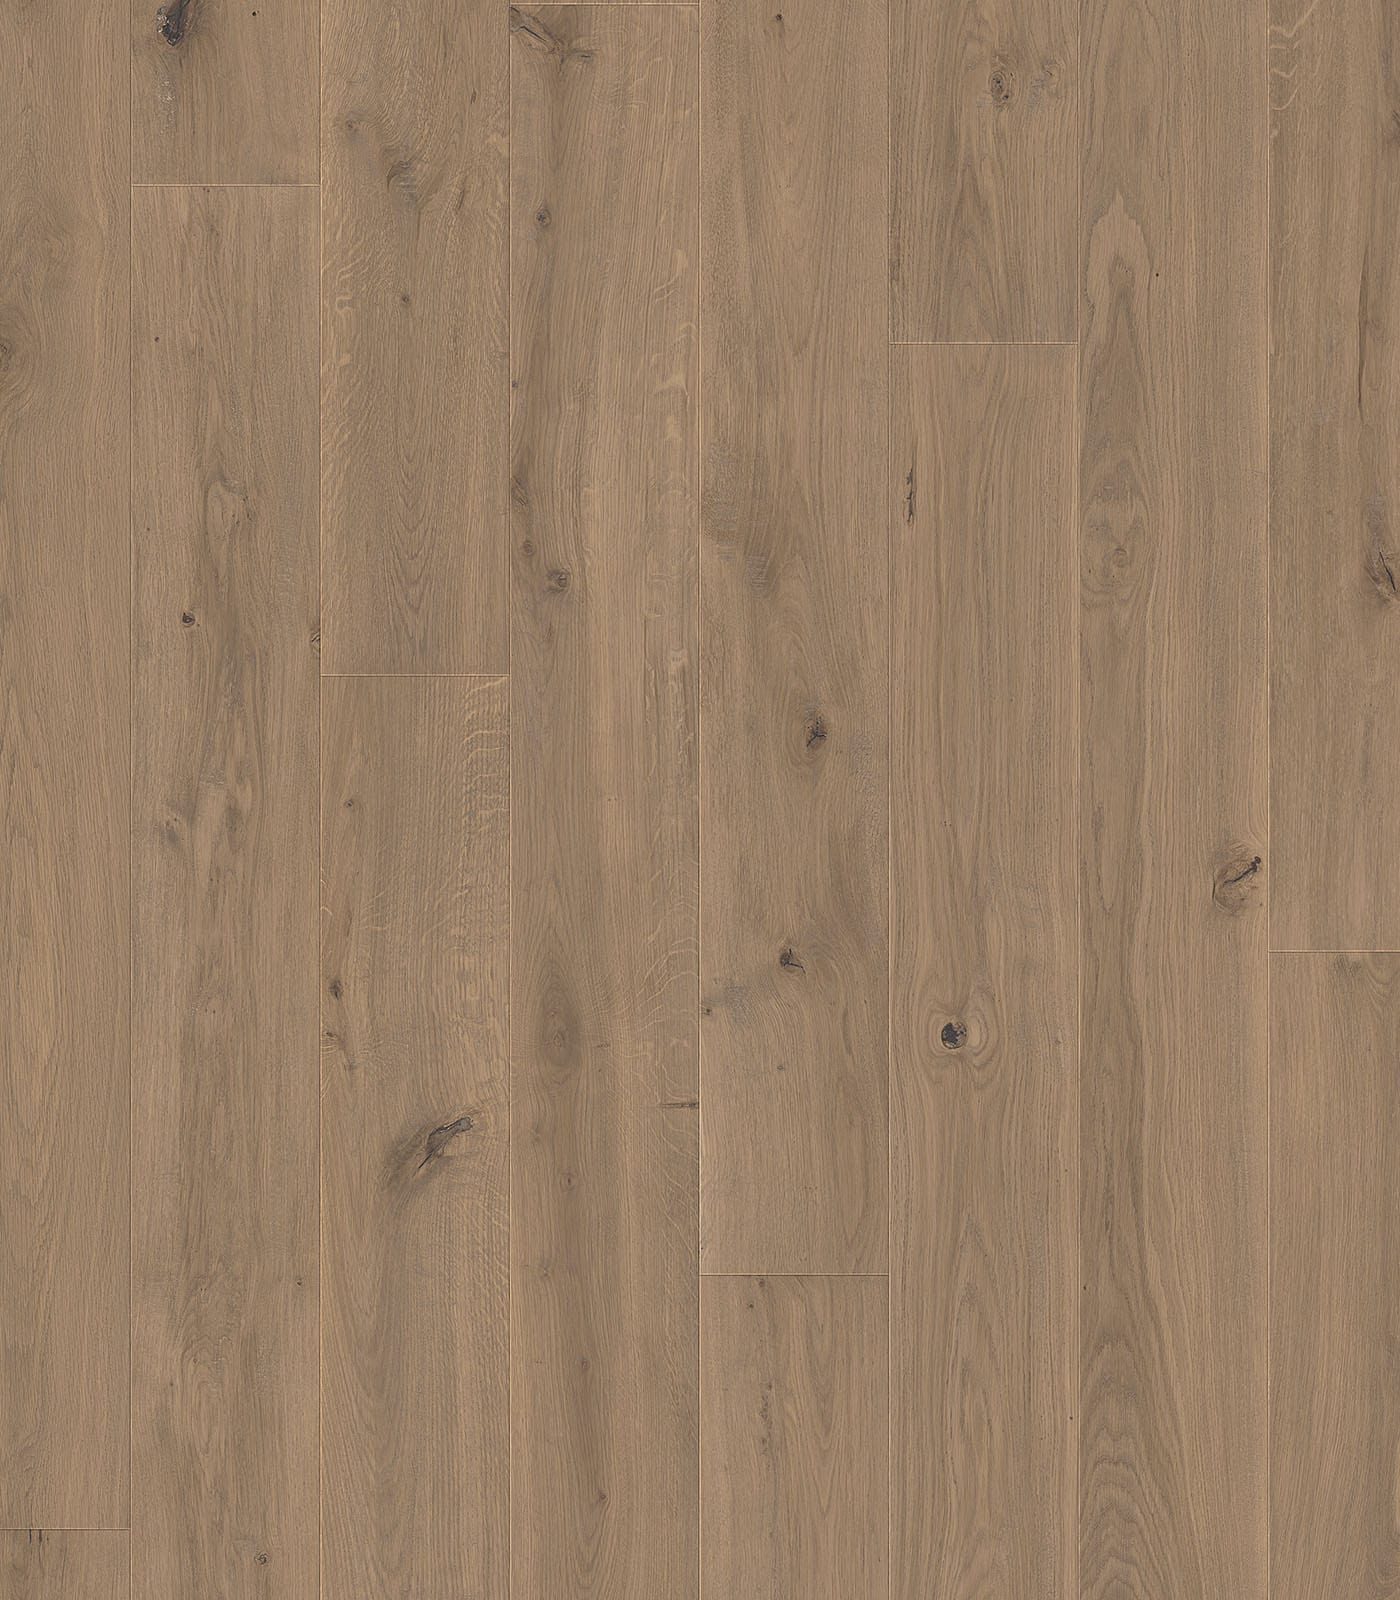 Elounda-Floors European Oak-Lifestyle Collection